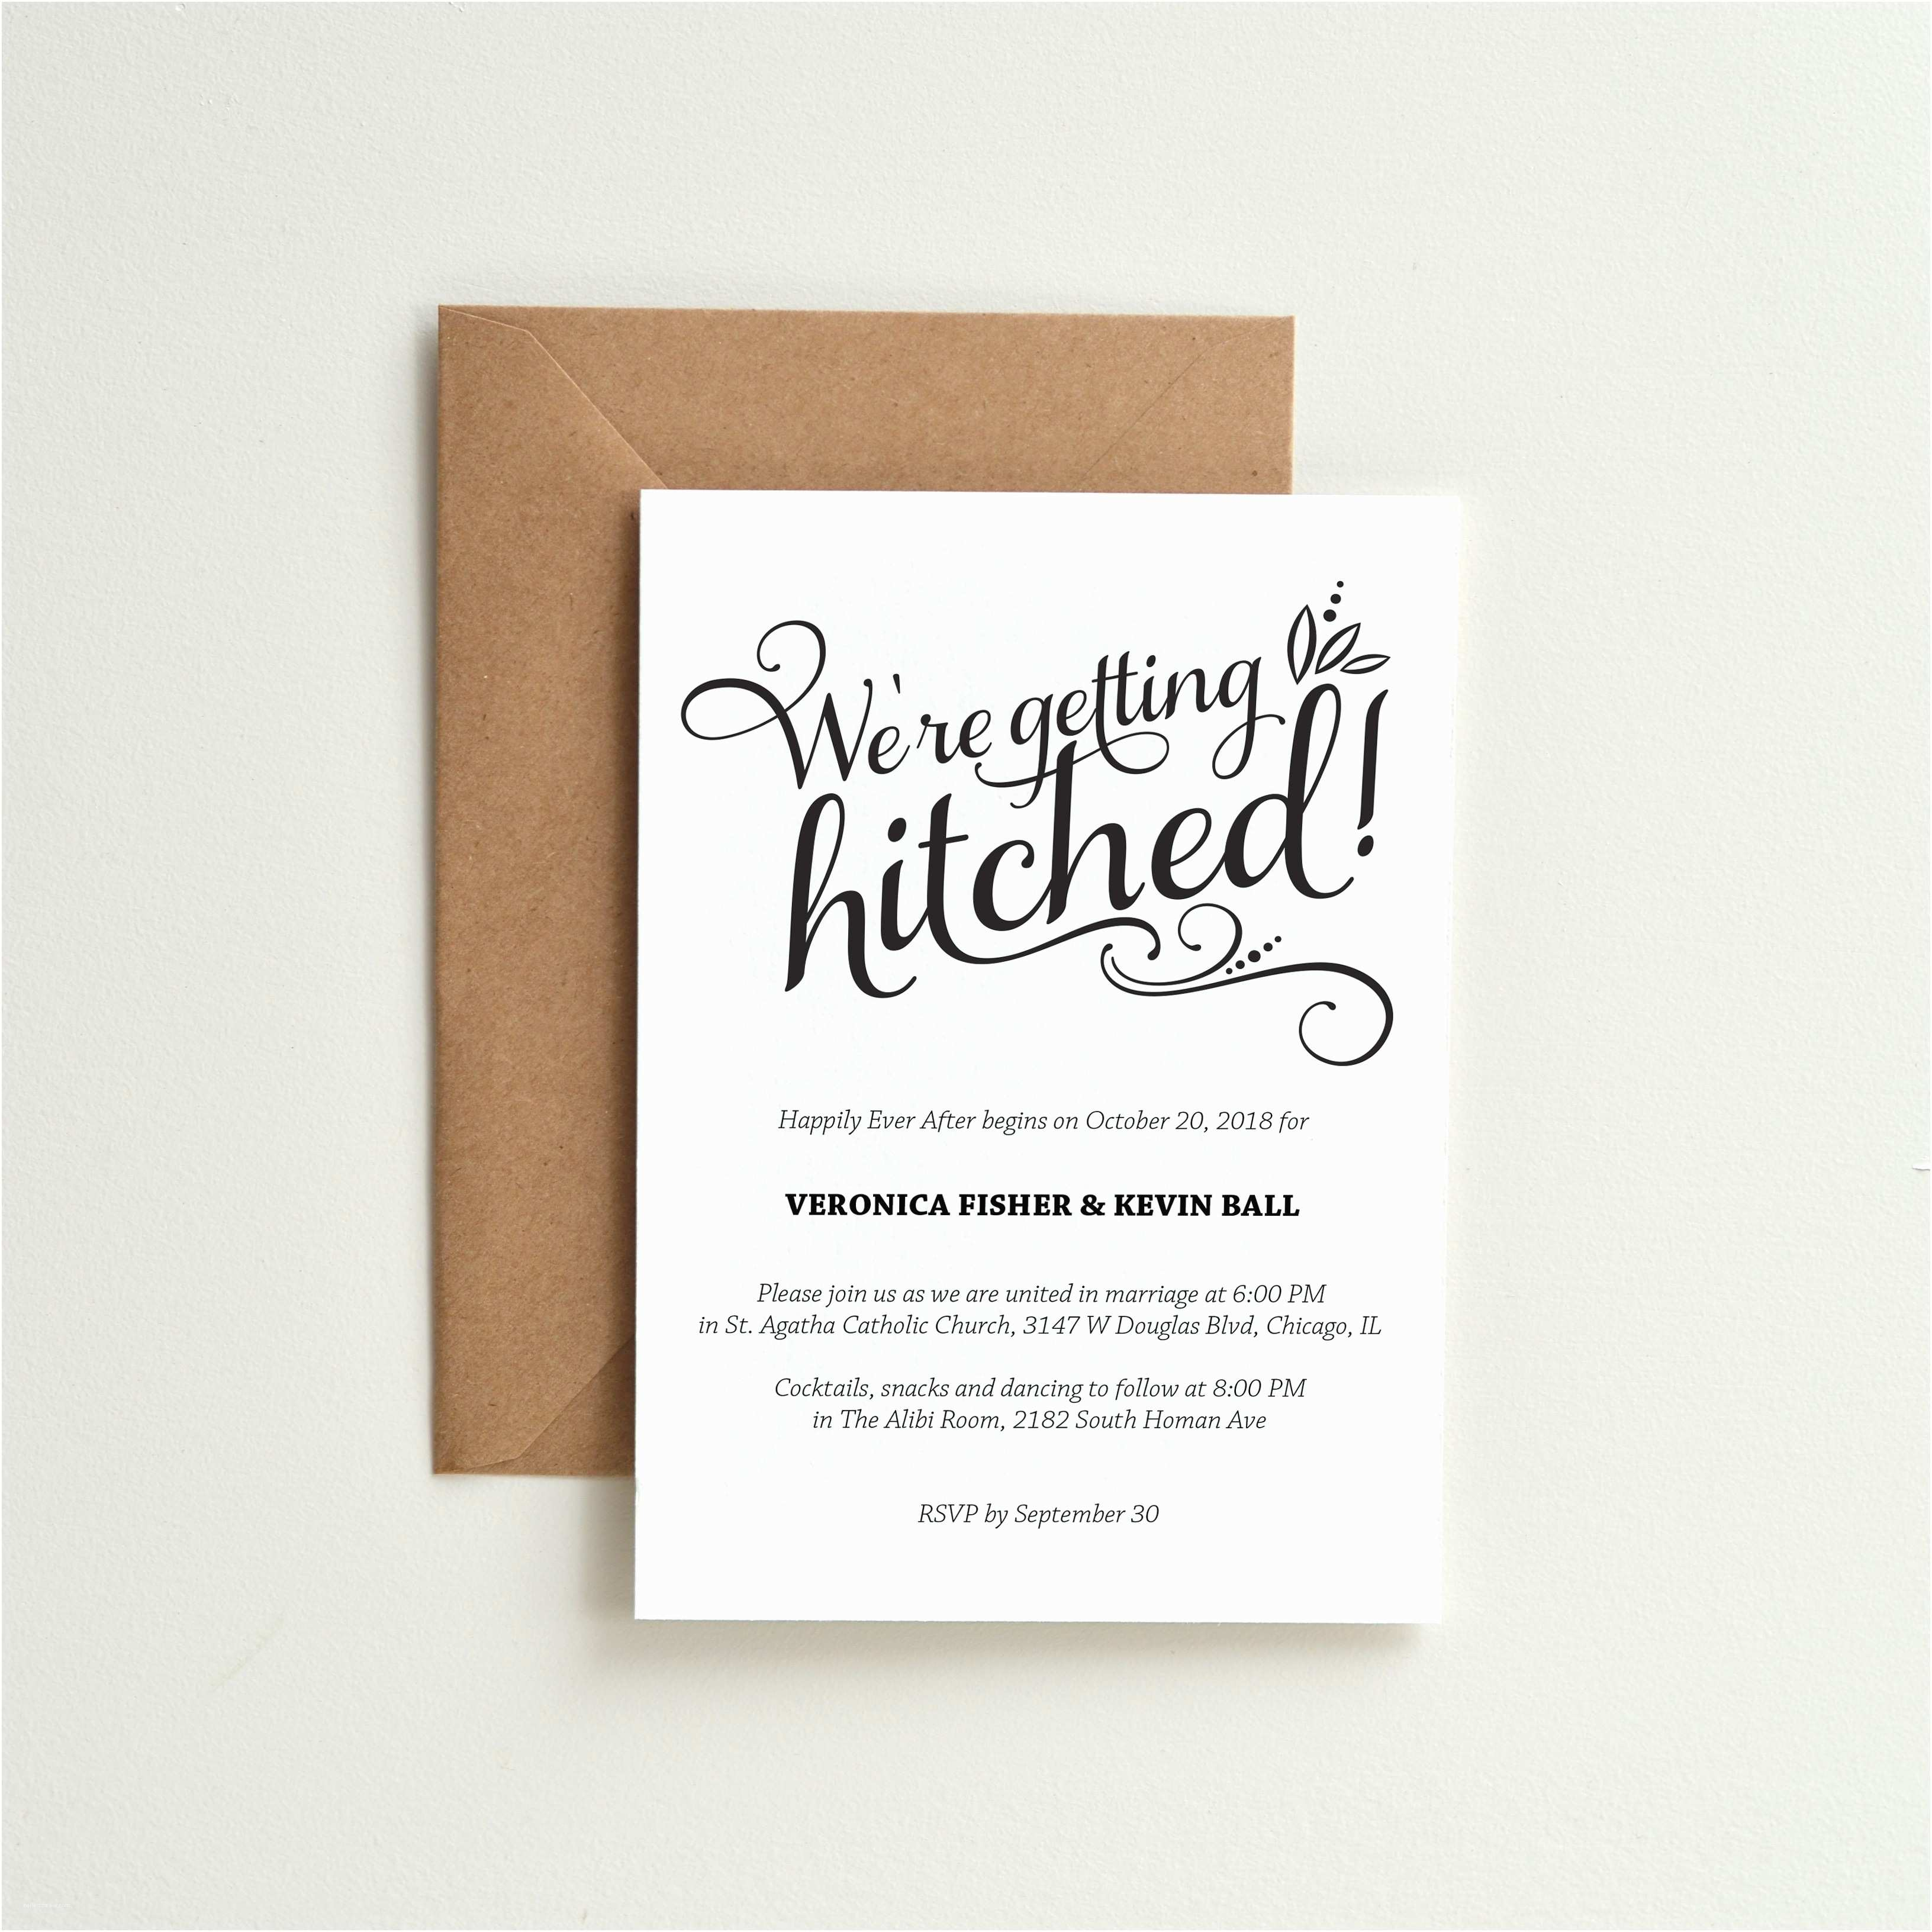 Funny Wedding Invitations 13 Funny Wedding Invitations Perfect For Every Sense